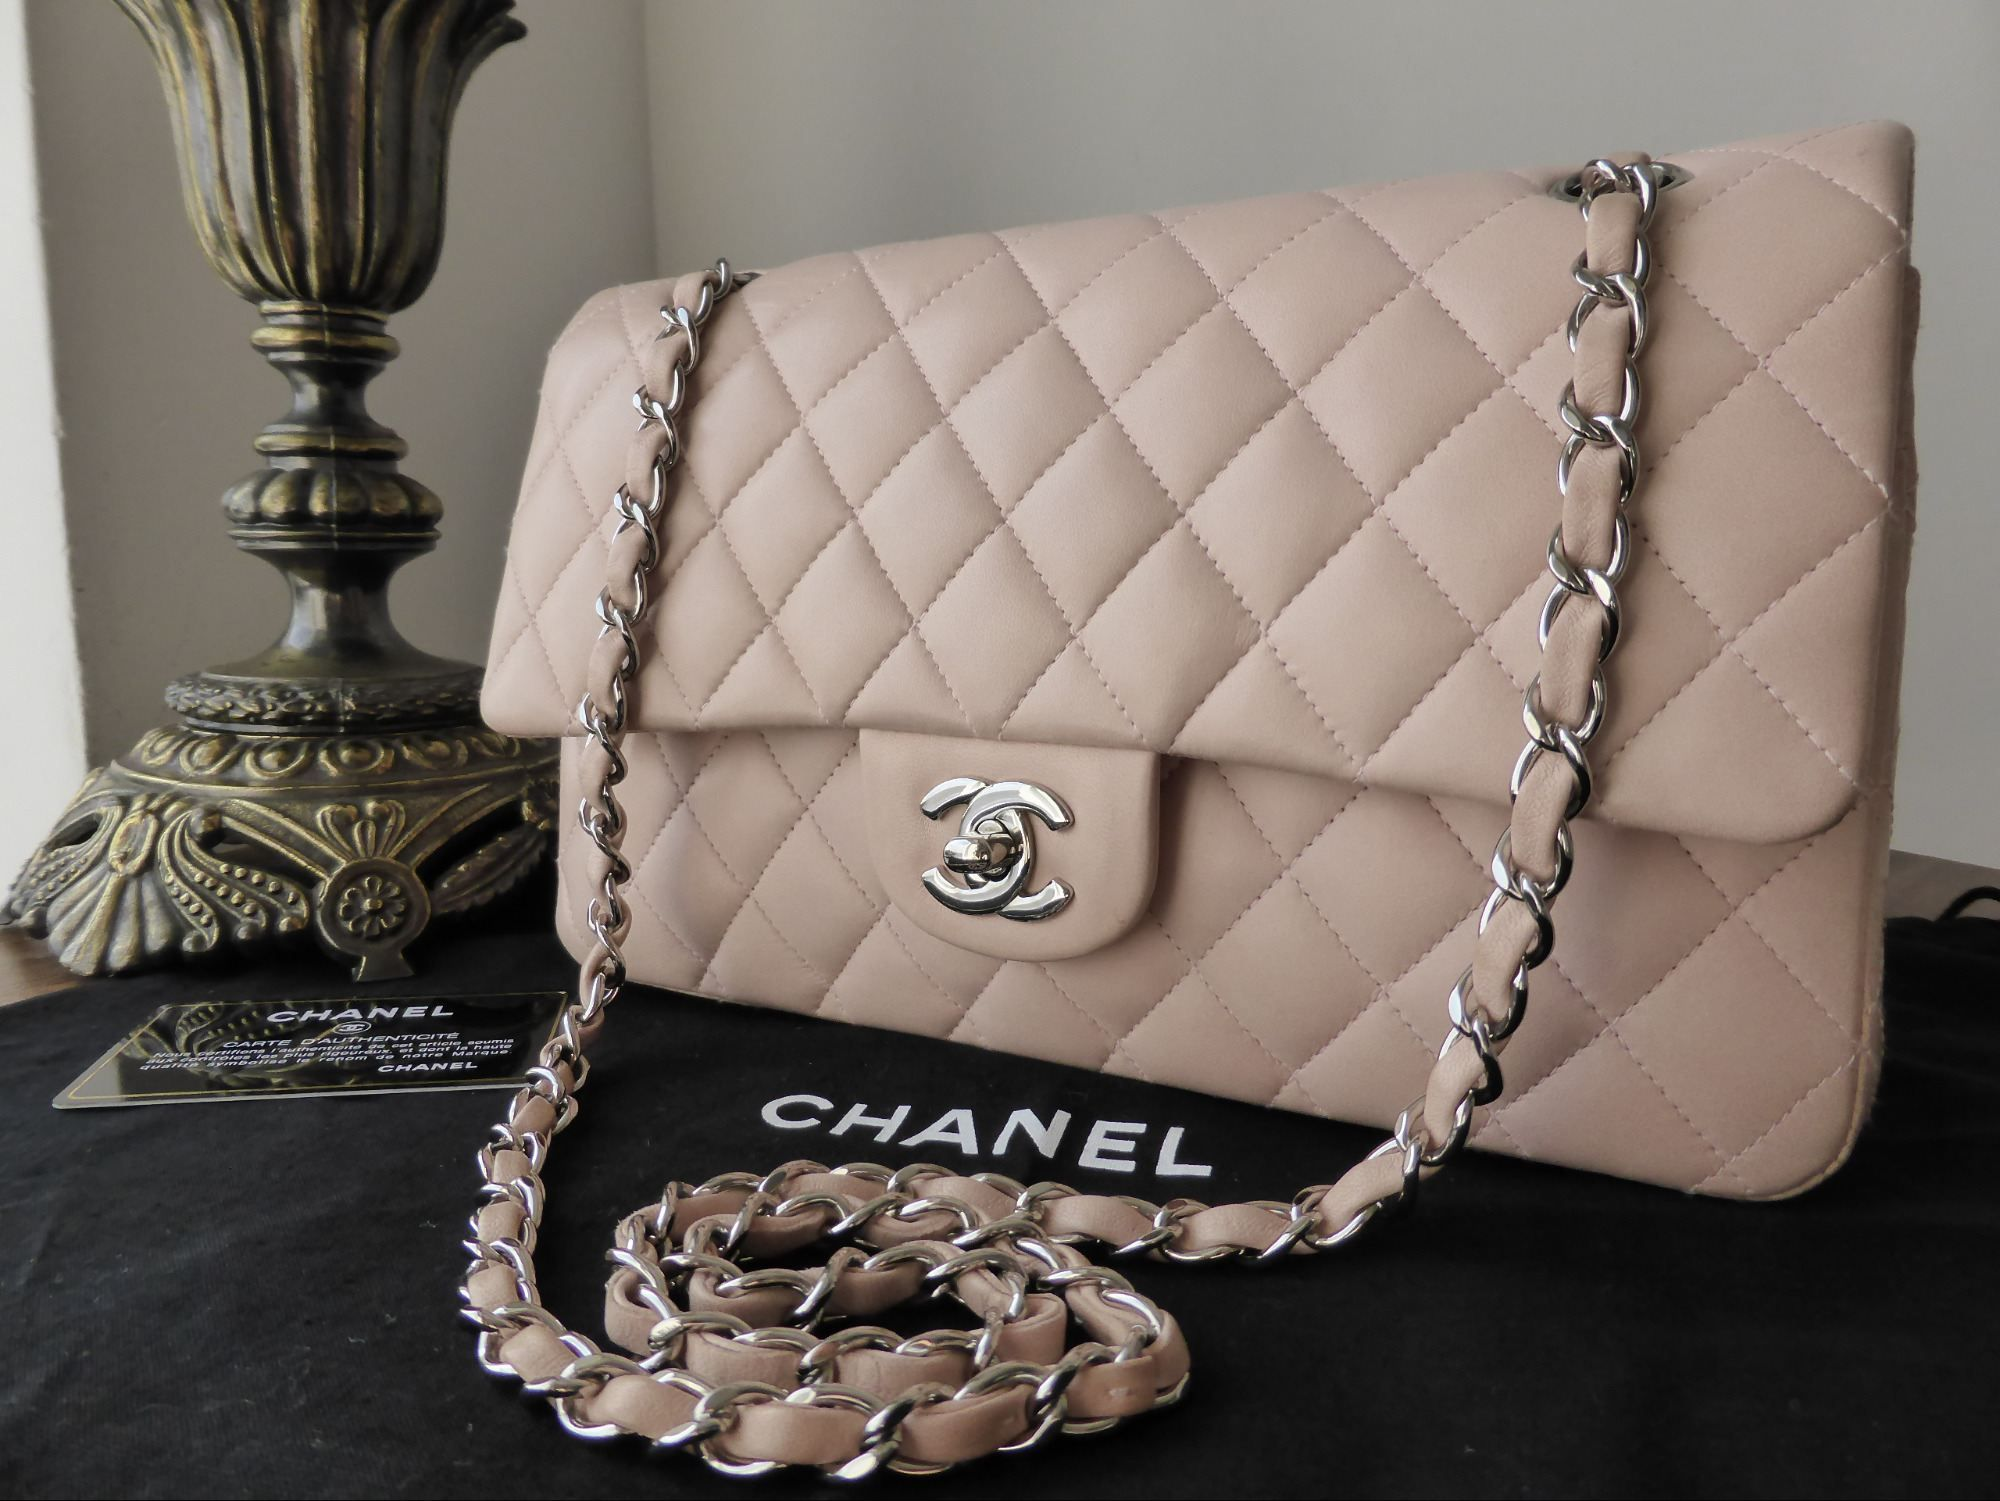 58fb42d5a78b Chanel Timeless Classic 2.55 Medium Flap Bag in Nude Pink Lambskin with  Silver Hardware >